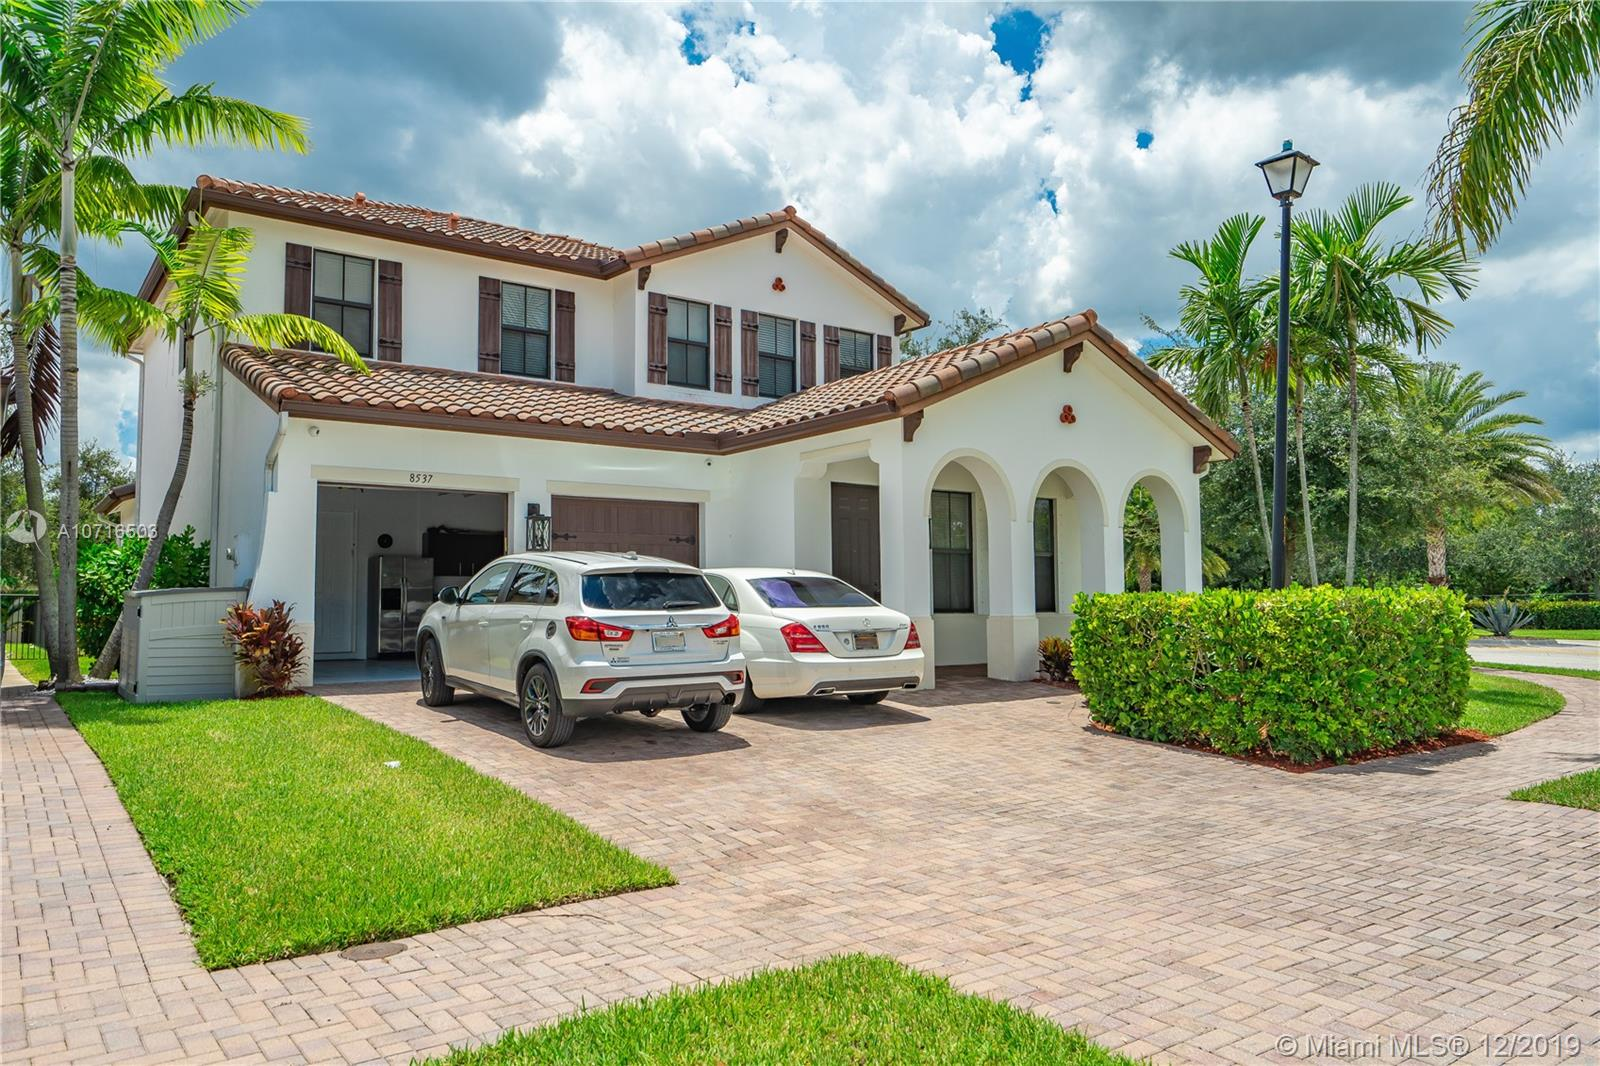 Listing A10716503 - Large Photo # 40